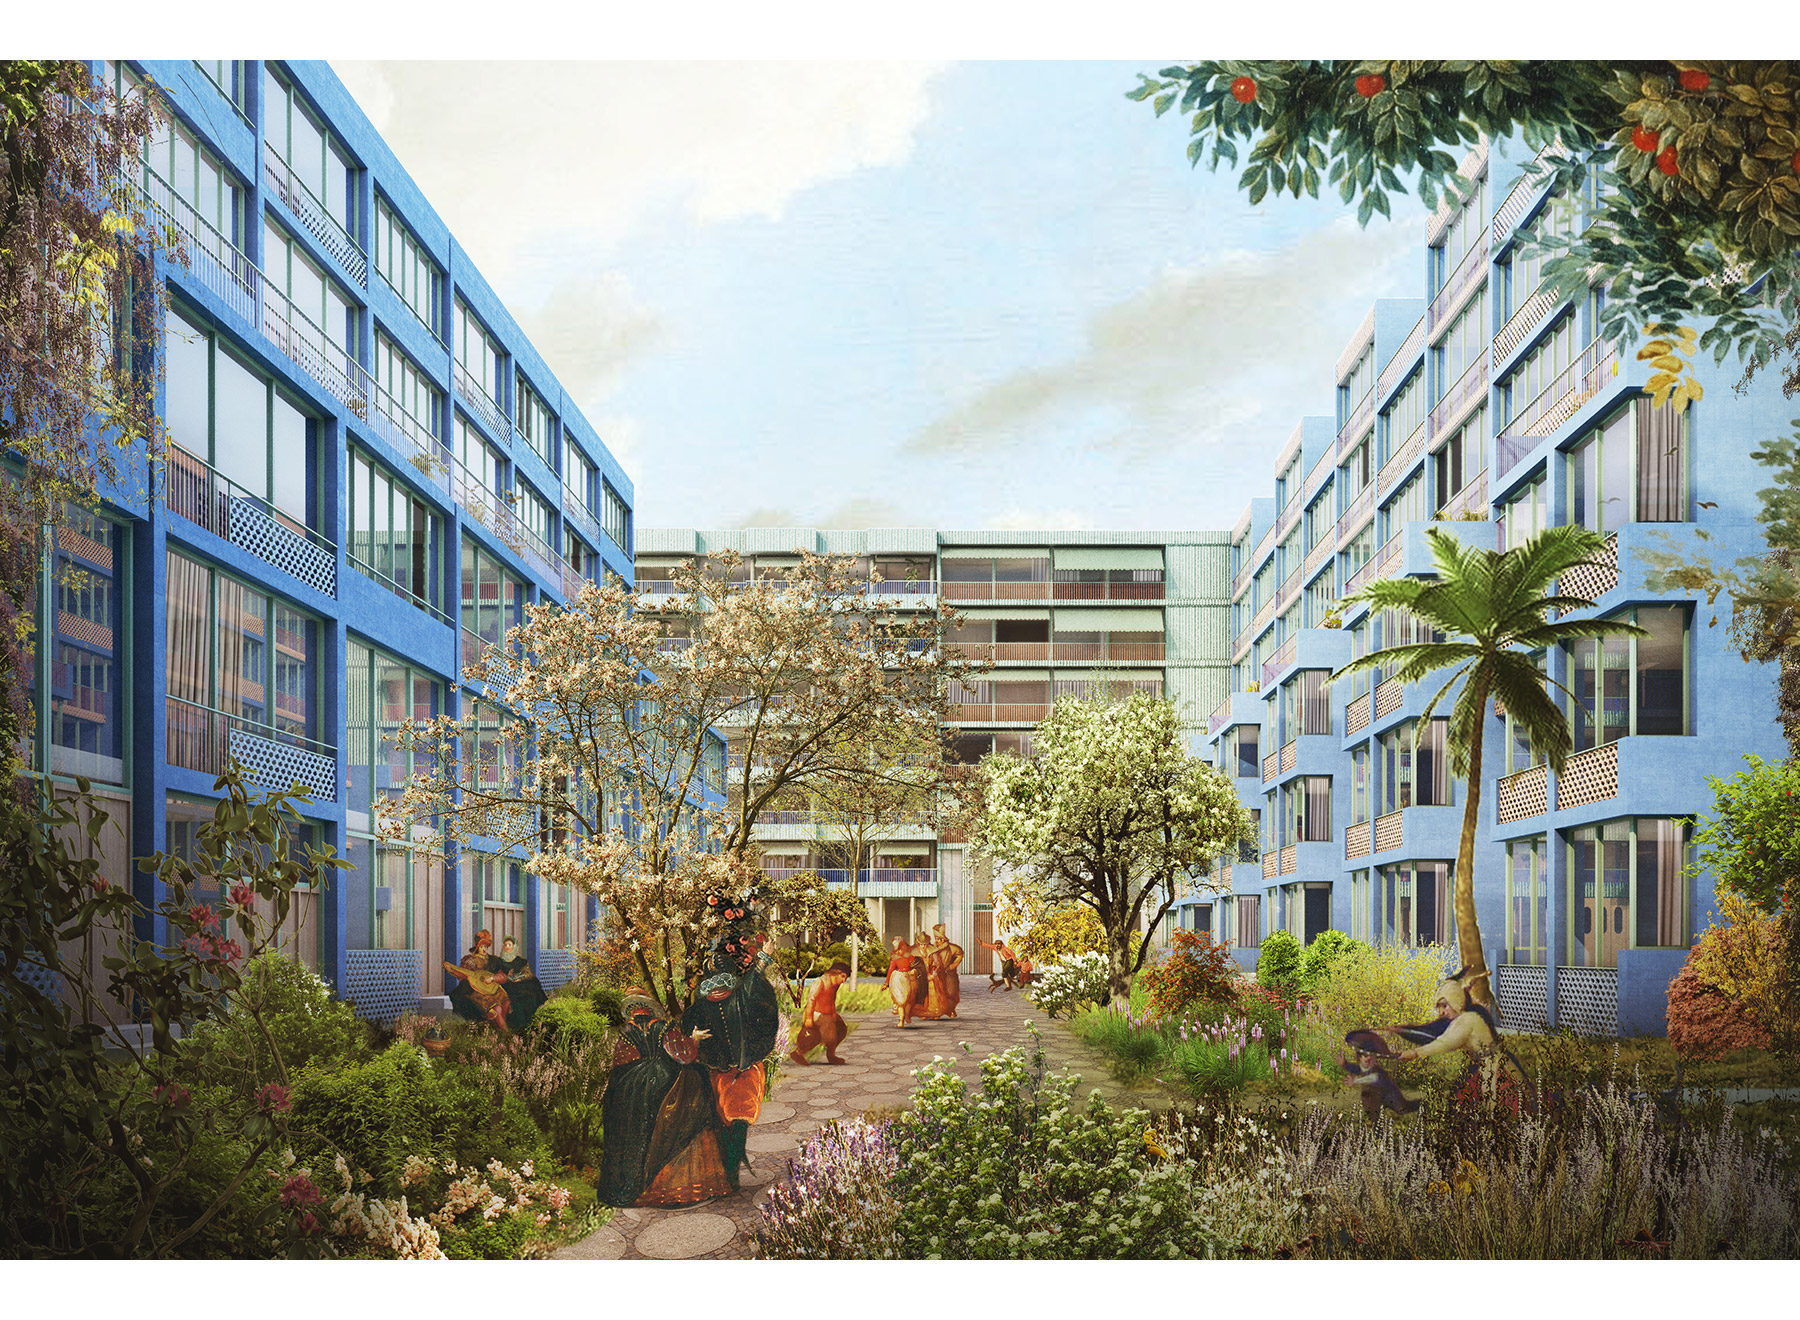 central residential yard, rendering: Ponnie Images